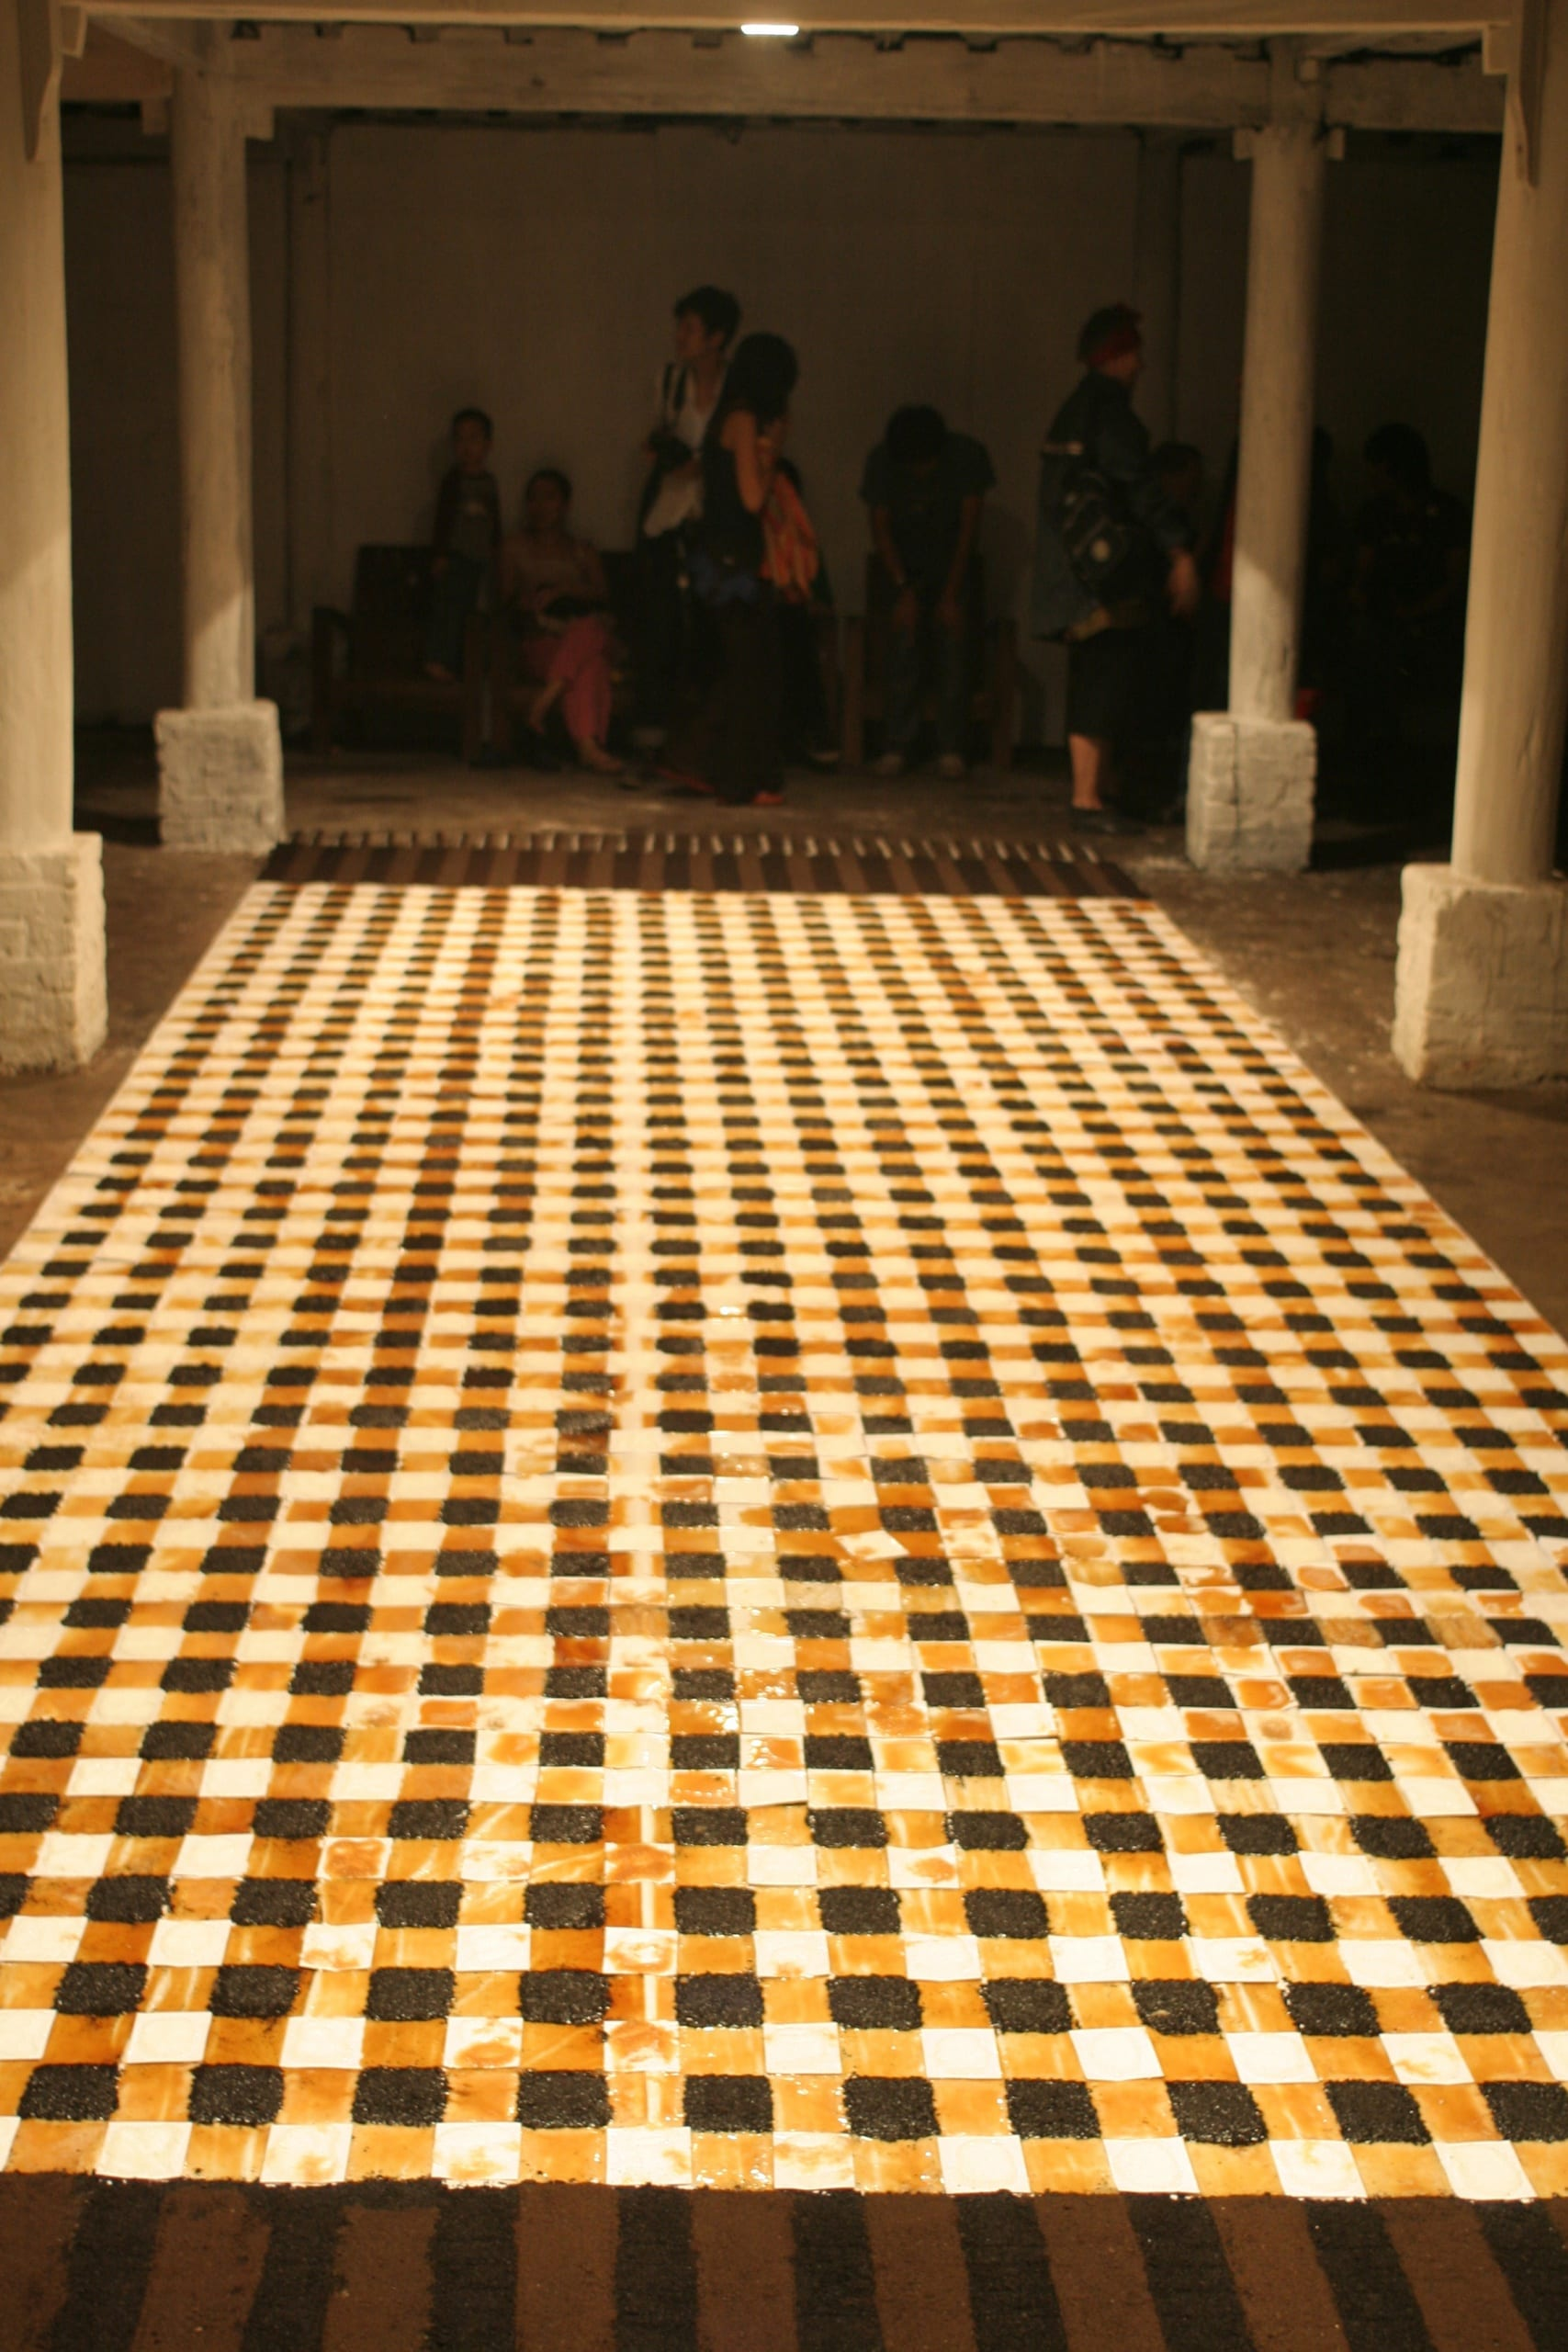 Color photograph of an artwork created on the floor that mimics a checkered scarf. The squares in the grid are painted using sugar and coffee grounds in alternating colors: dark brown, white, and light brown.